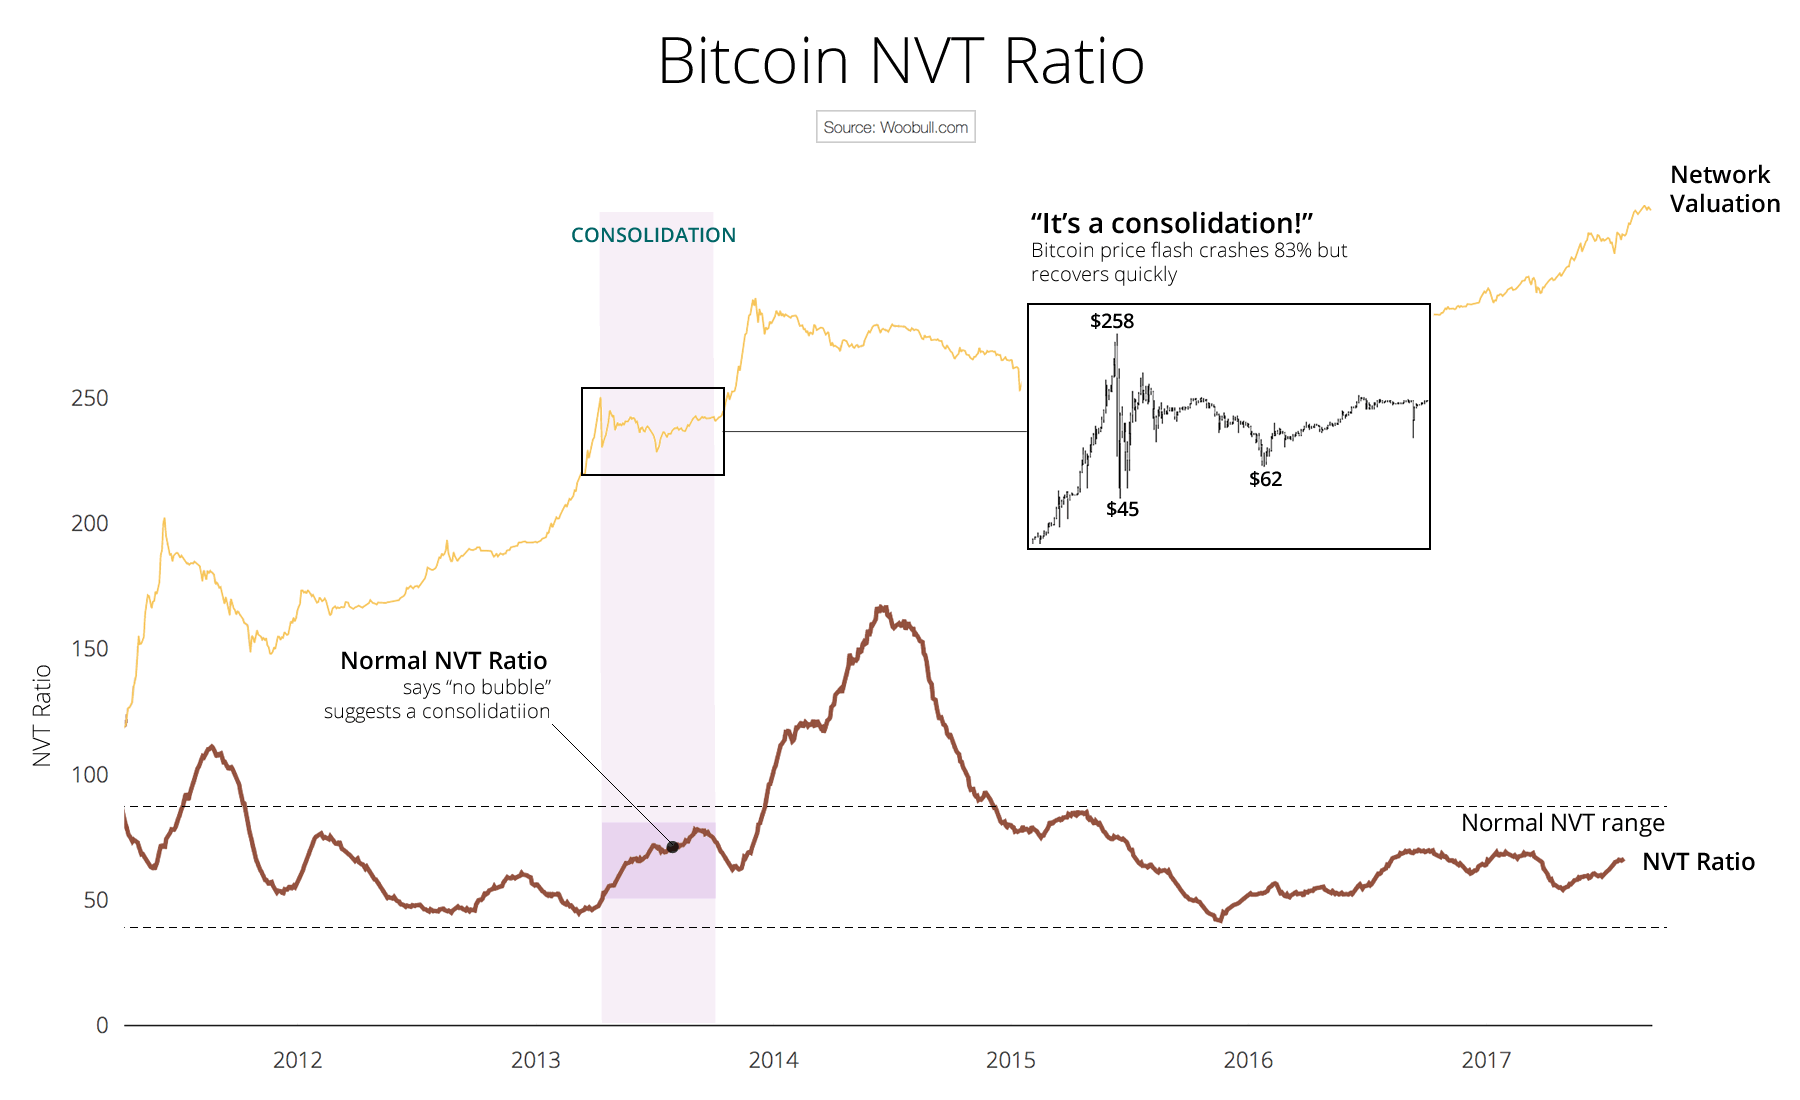 NVT ratio indicating a consolidation